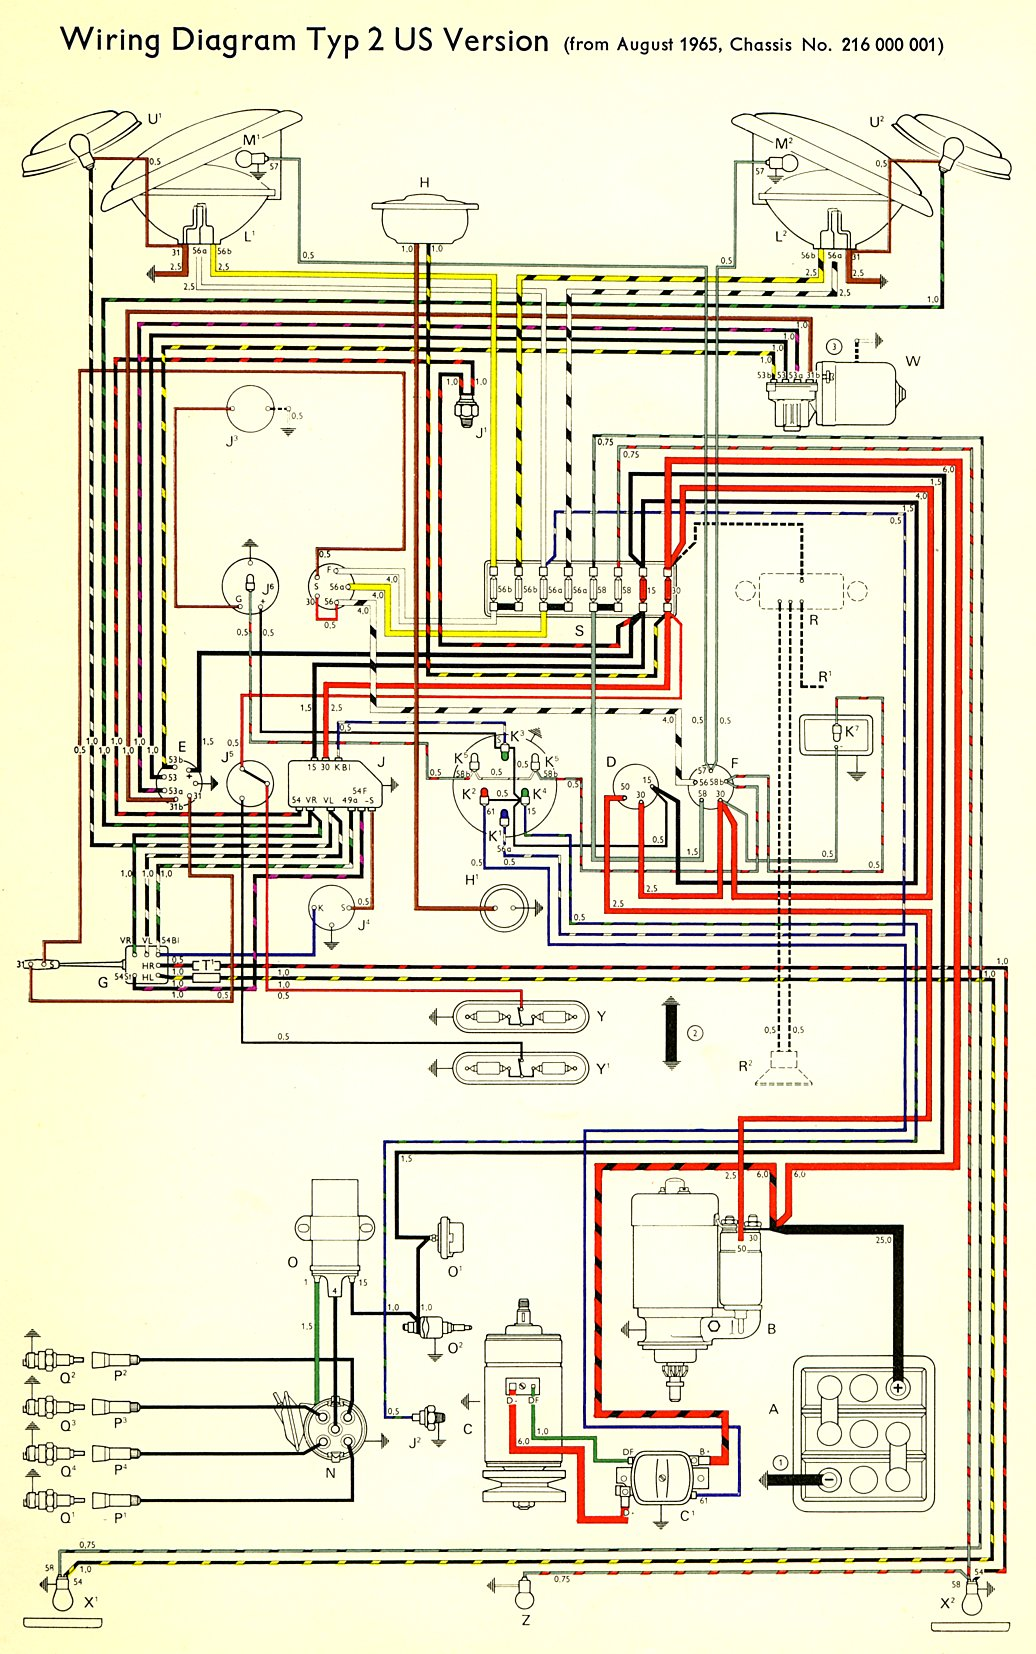 bus_66_USA 1966 bus wiring diagram (usa) thegoldenbug com vw wiring diagrams at gsmx.co